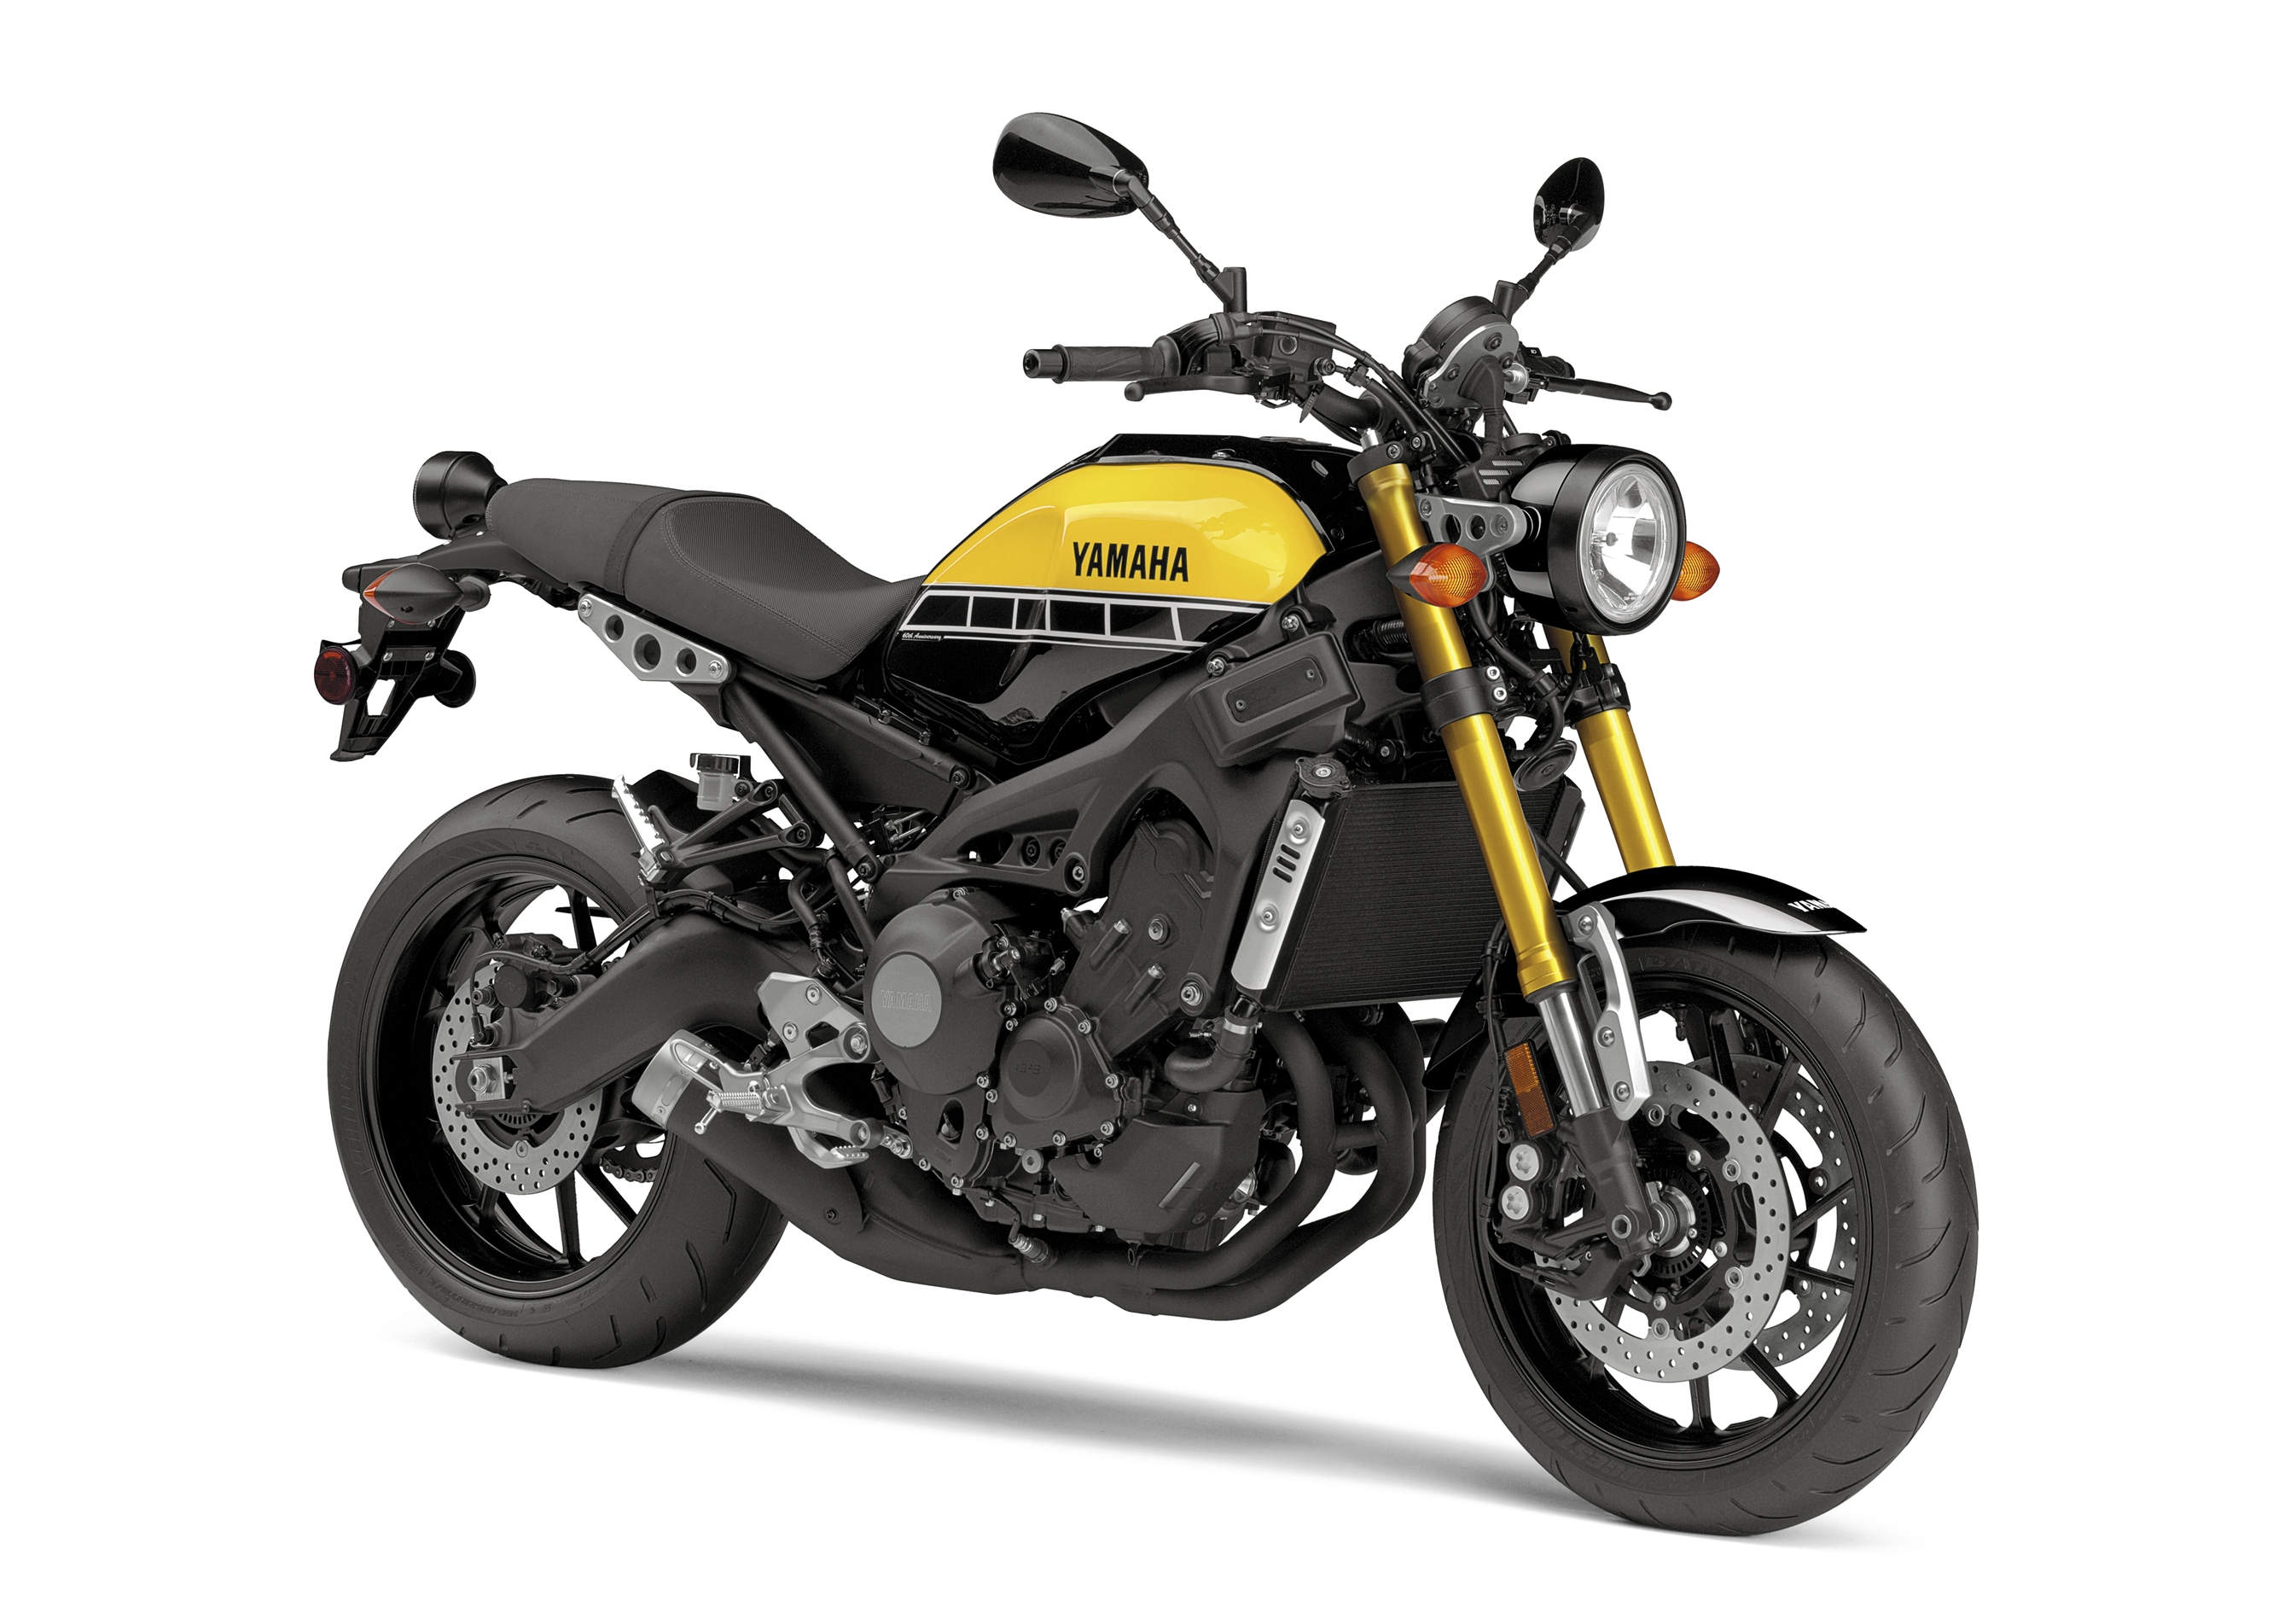 Yamaha Announces Remaining 2016 Models And Pricing For XSR900 FJR1300 Updated